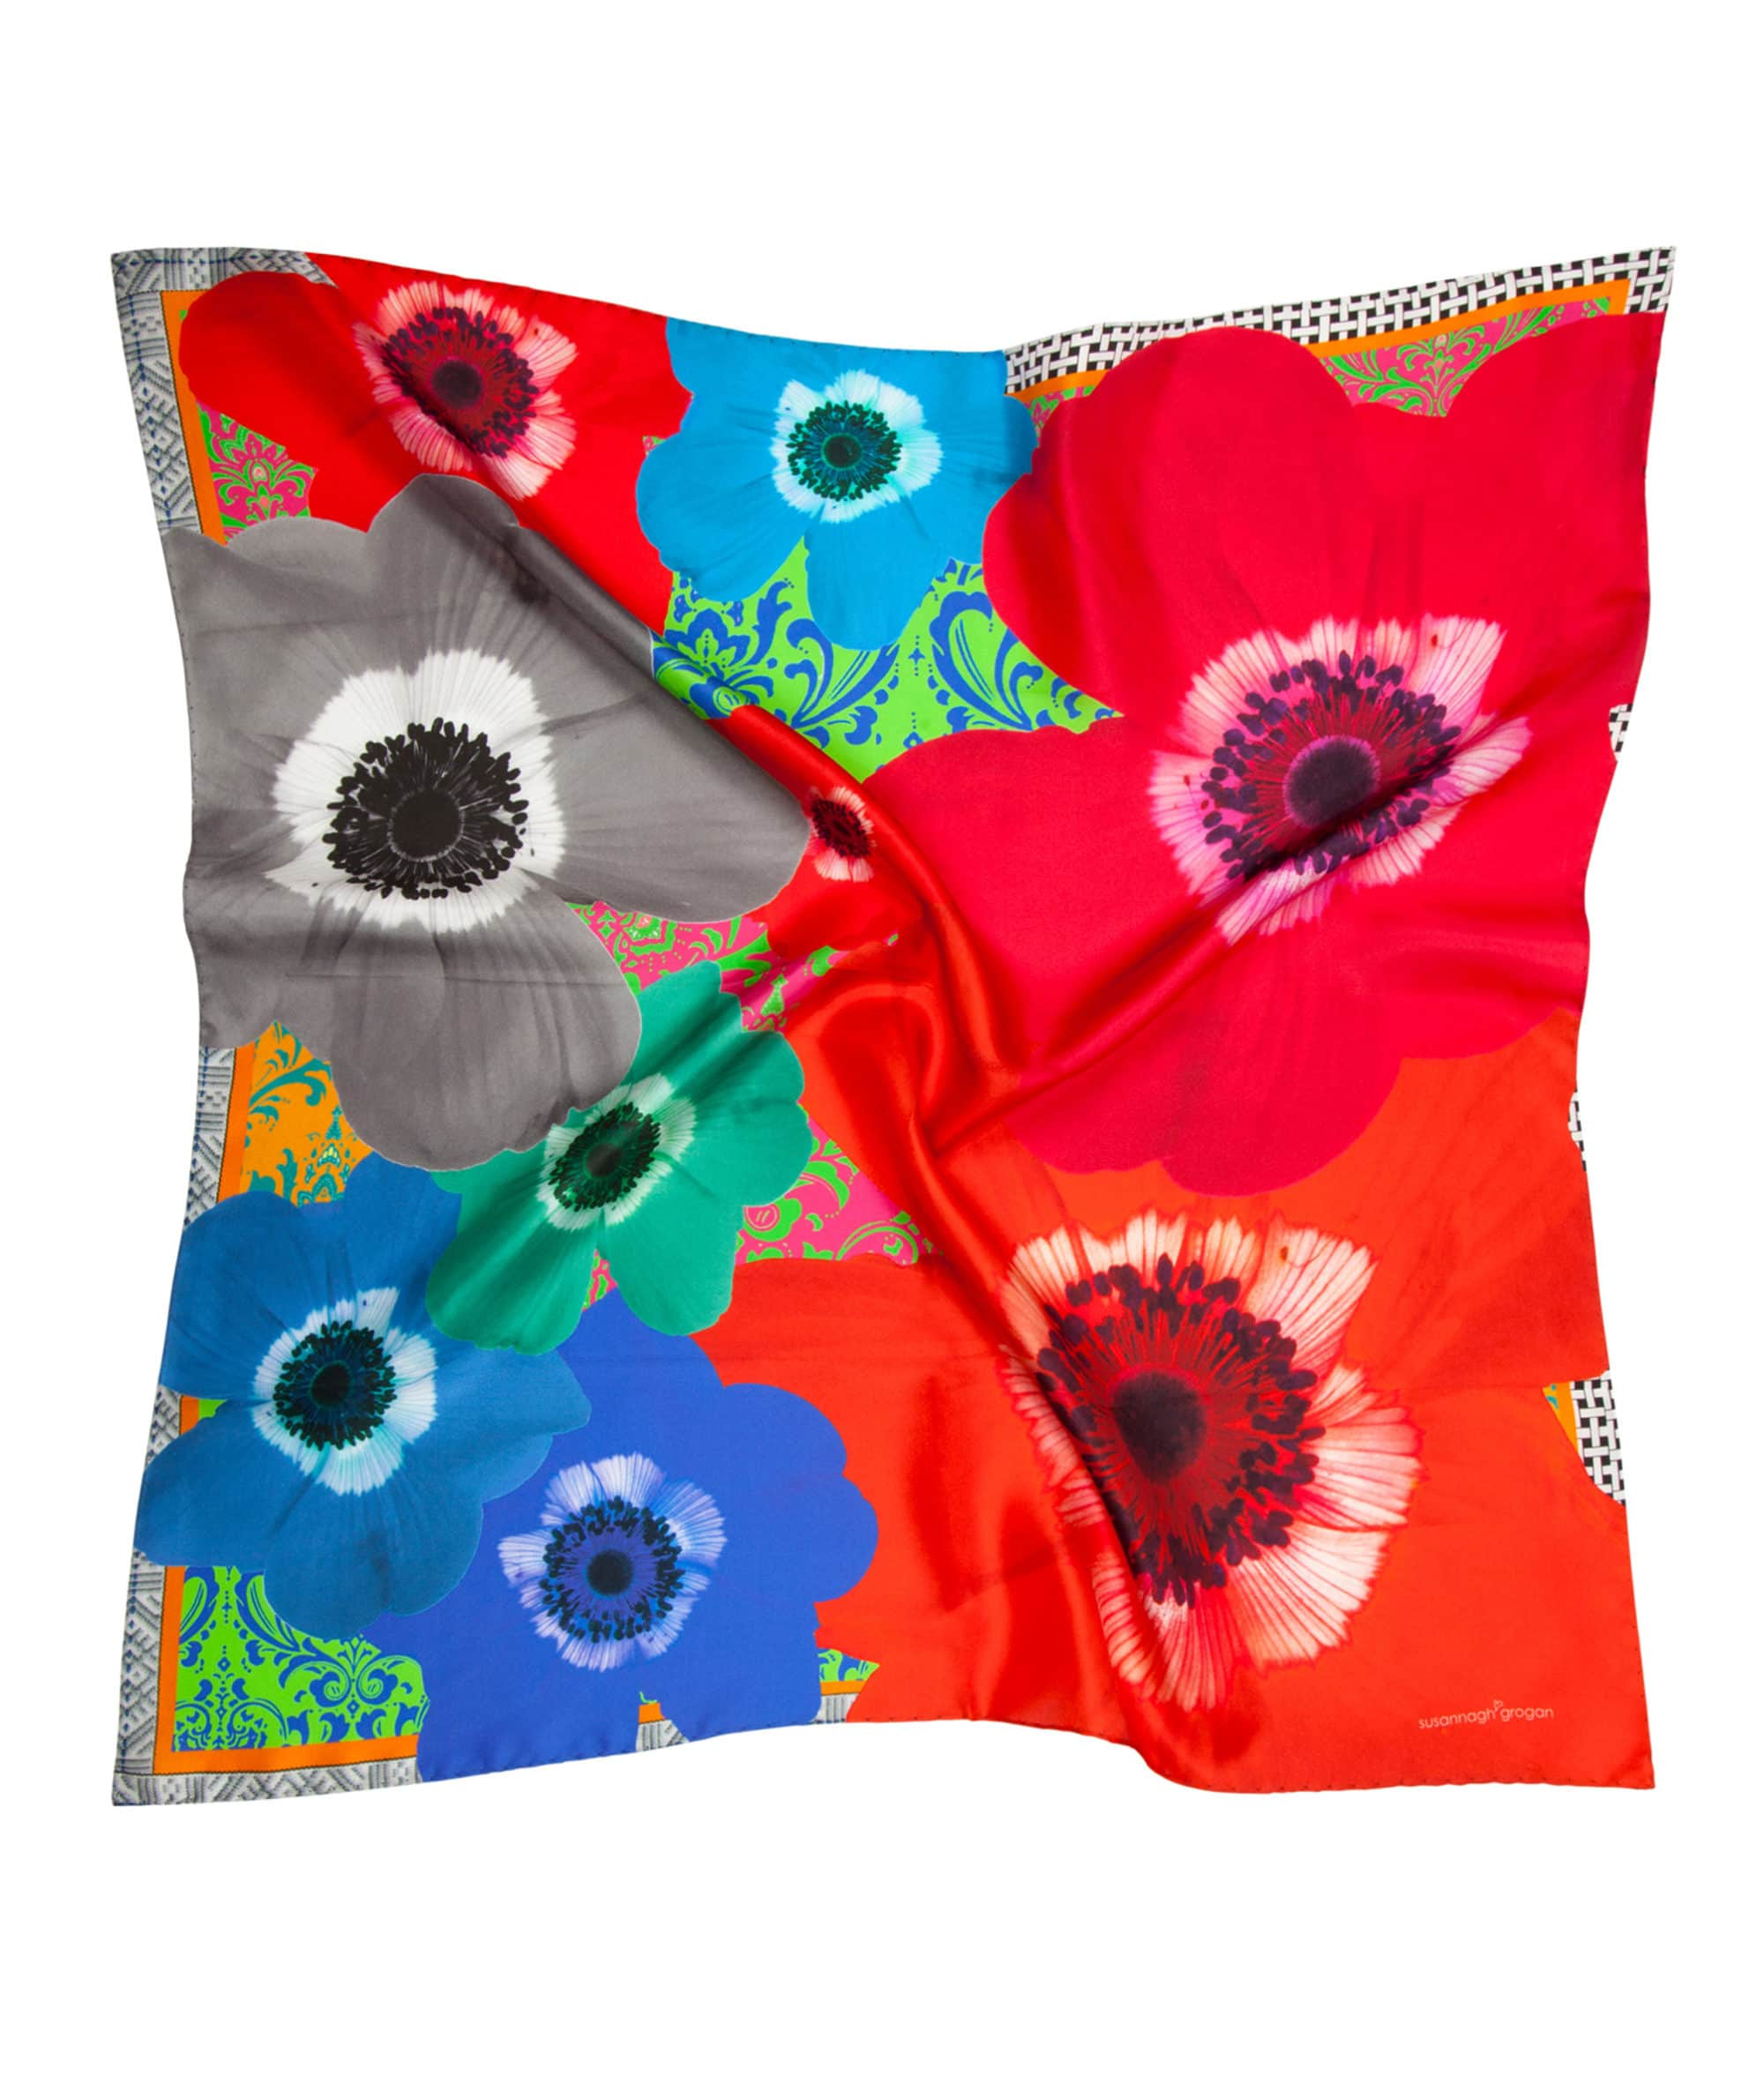 Colour Riot 'Floral Burst' Small Scarf